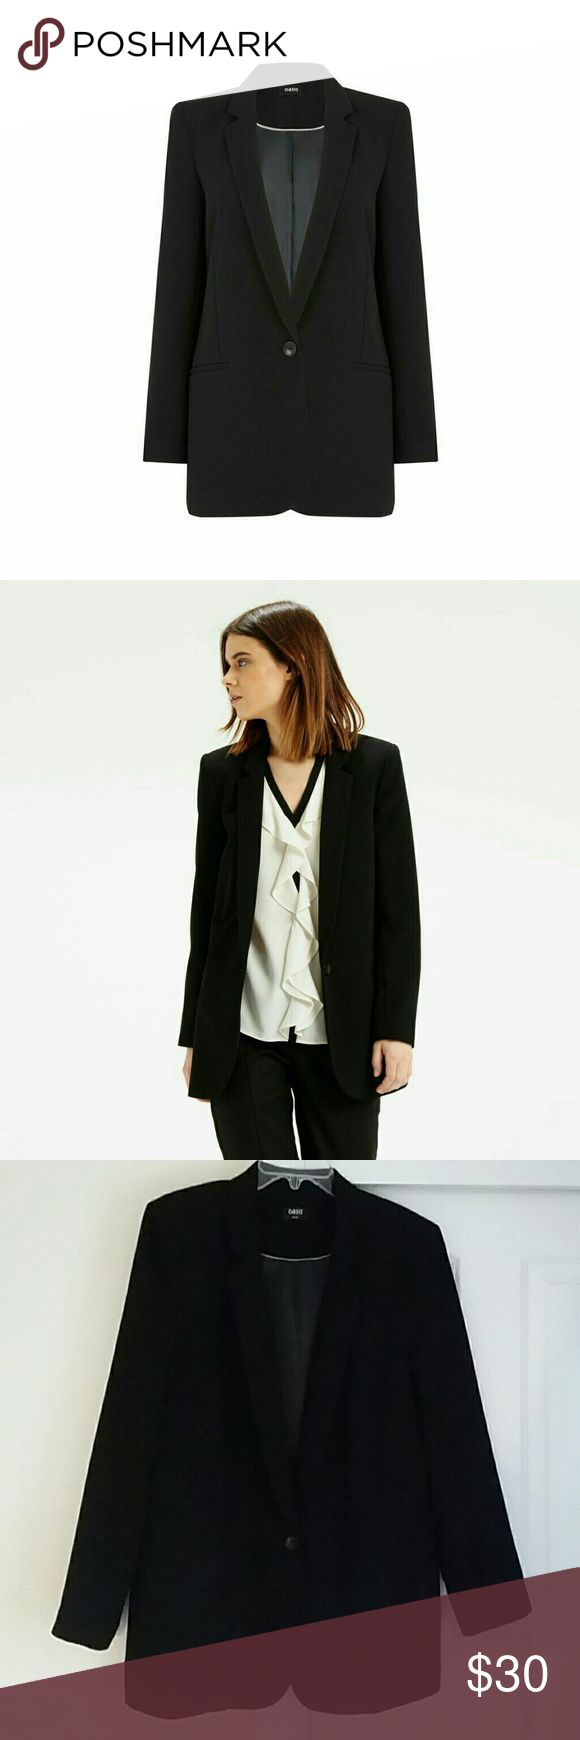 """Black Oasis Textured Ultimate Blazer Out of stock in stores! """"They say simplicity is key. Just take a look at this timeless tailored jacket, all clean lines with a contemporary cut."""" 100% Polyester, Dry Clean. One button, faux front pockets. UK 16, EU 42 = U.S. Large (10-12) Bust: 38-40"""", Waist: 31-33"""", Hips: 40-42"""". Worn just once, like new! Oasis Jackets & Coats Blazers"""